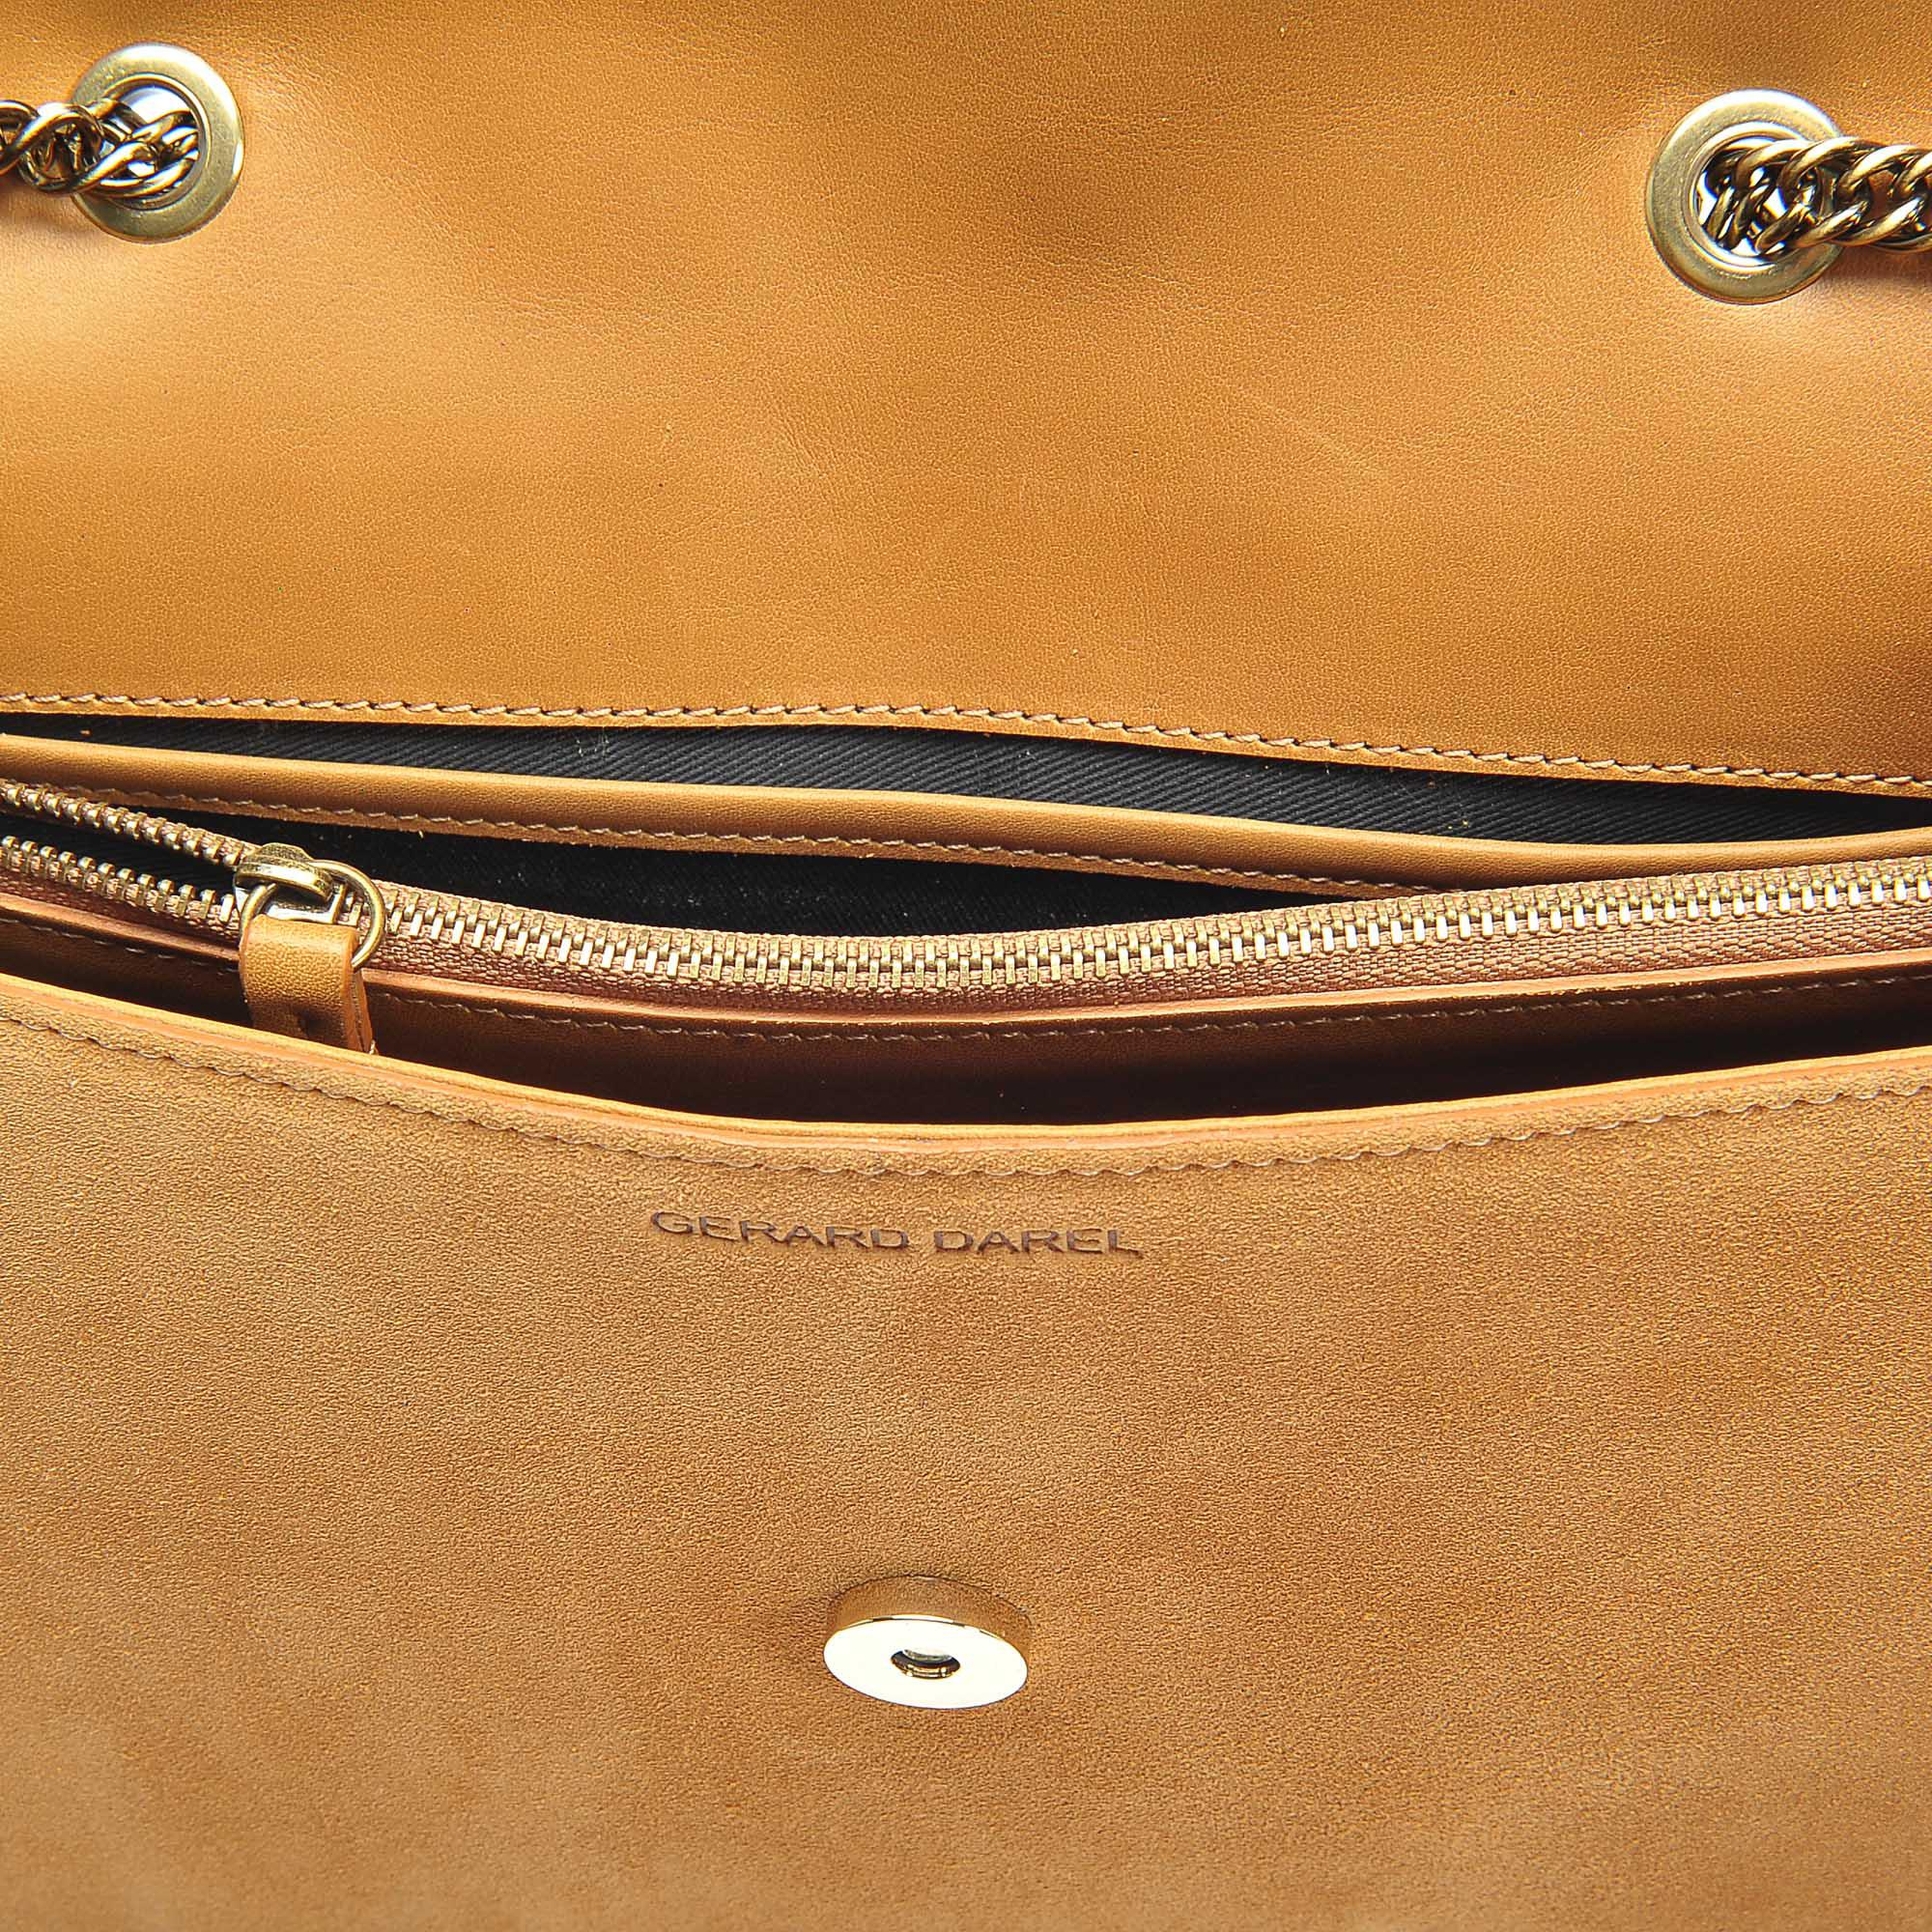 Lucky Bag in Tan Leather Gerard Darel h4VpPAl8W